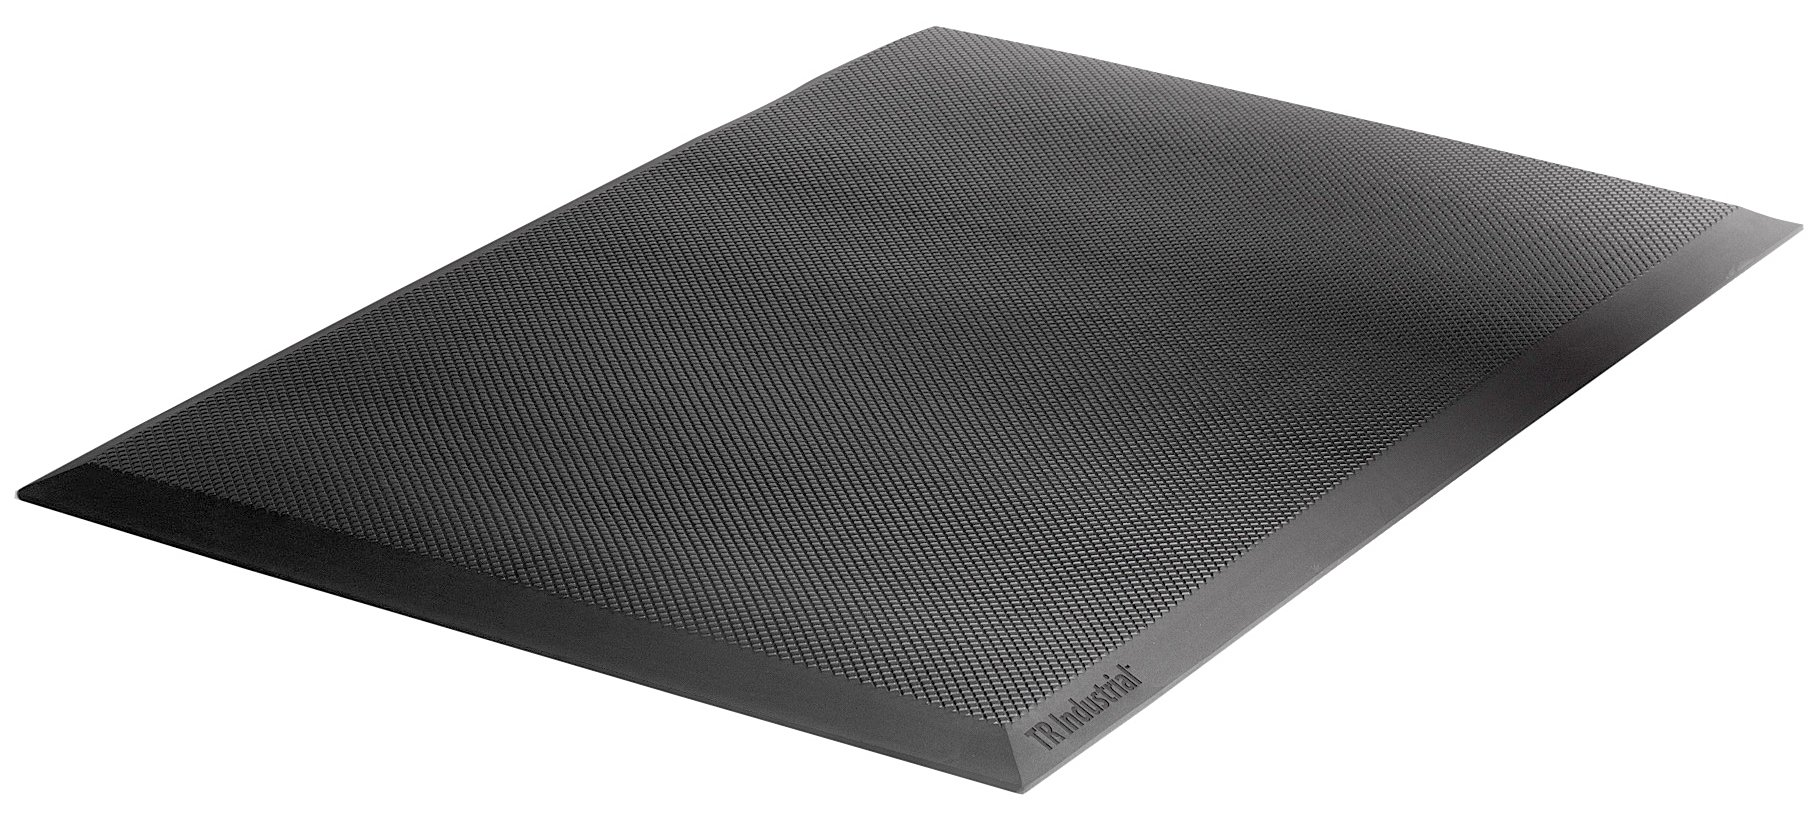 TR Industrial TR88250 Anti-Fatigue Mat For Home, Office, and Kitchen Standing Relief, 23.25'' x 34'' x 3/4'', Black, 24'' x 36''